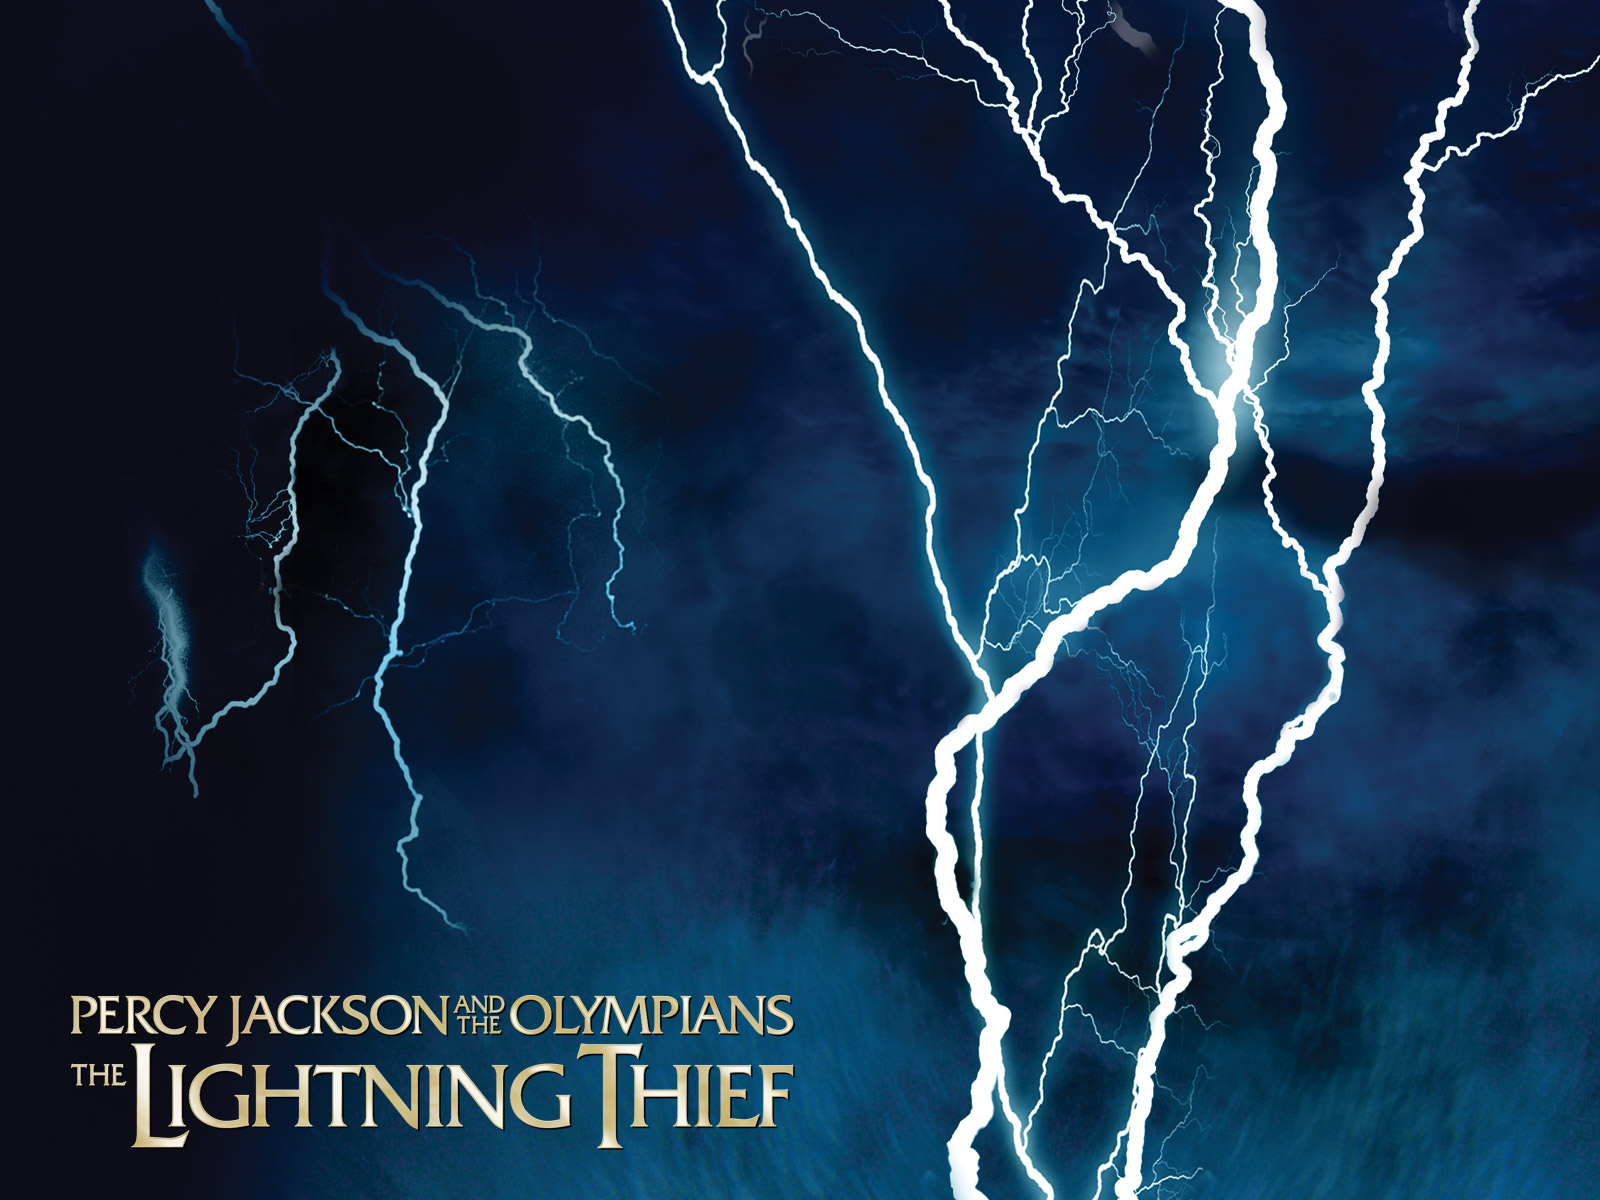 Give Your Computer Screen A High Octane Boost With Percy Jackson Movie 1600x1200